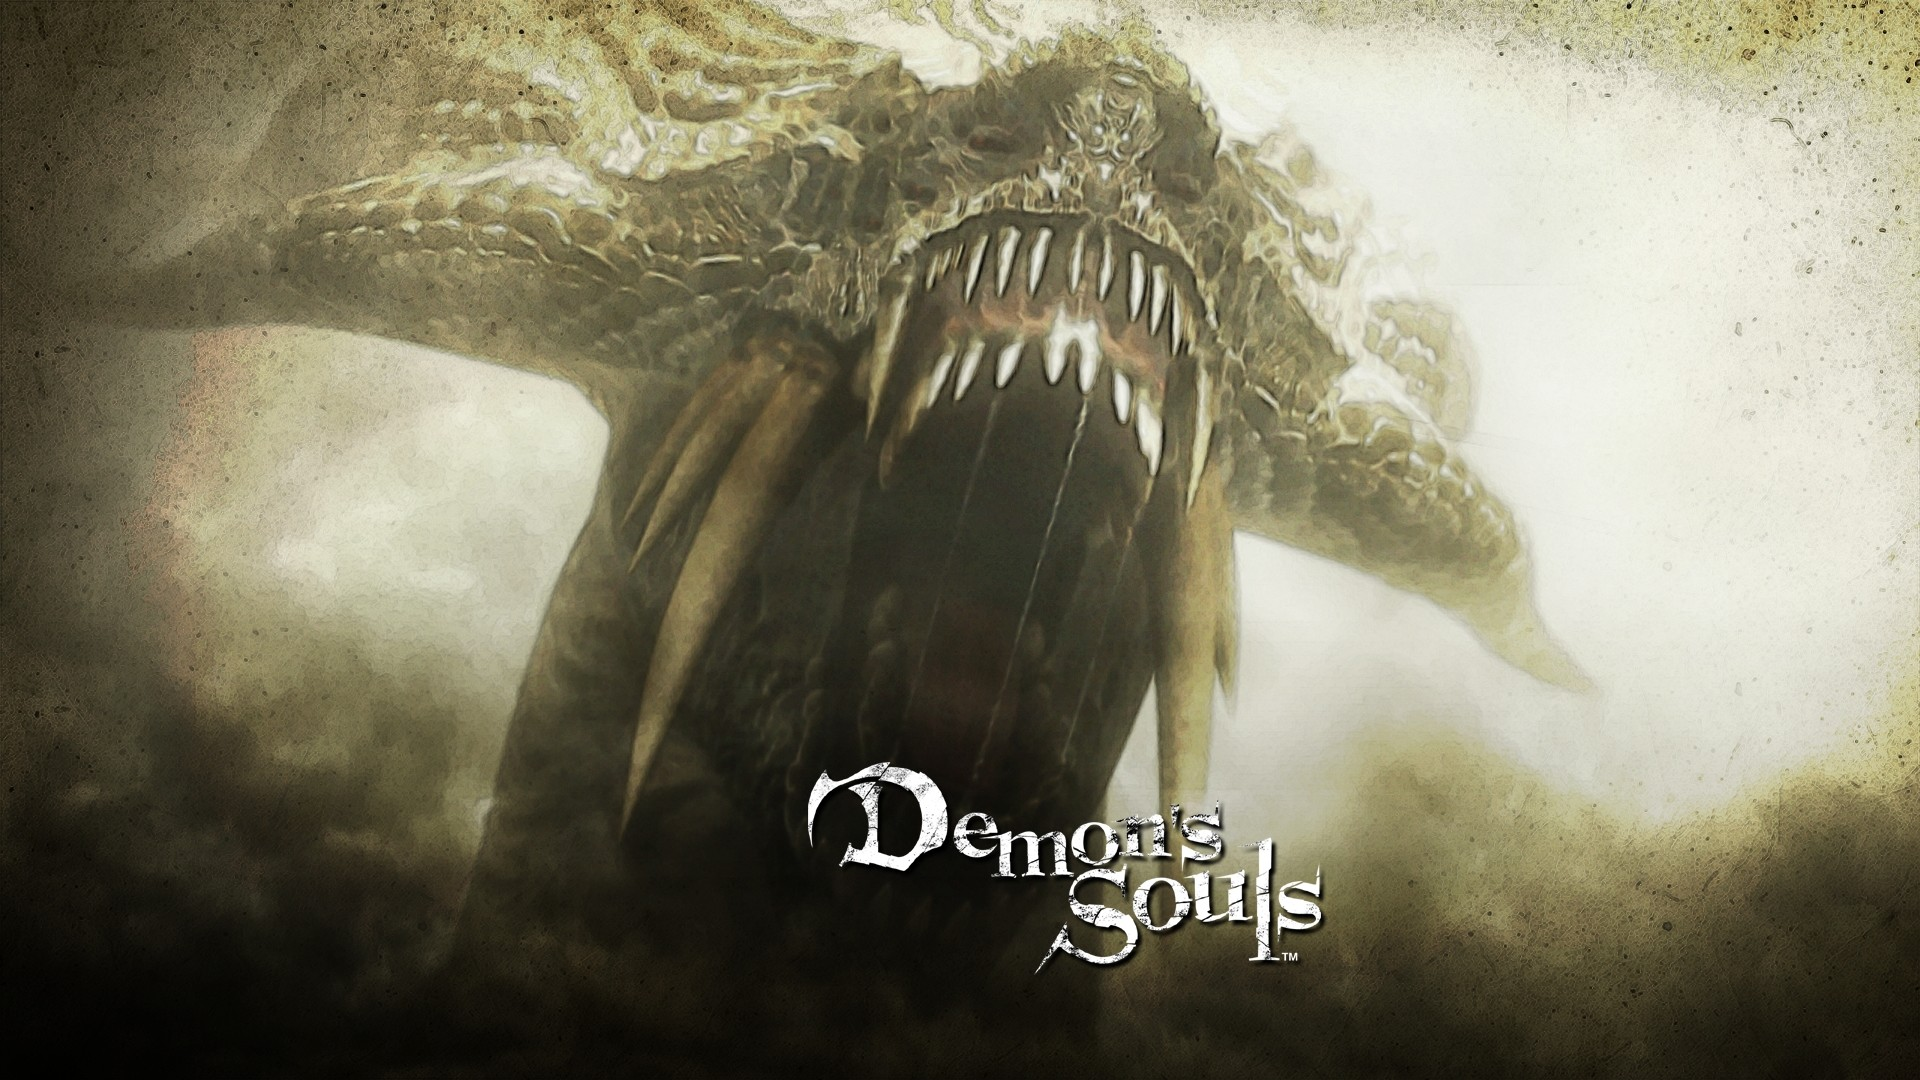 Res: 1920x1080, wallpaper #1 Wallpaper from Demon's Souls